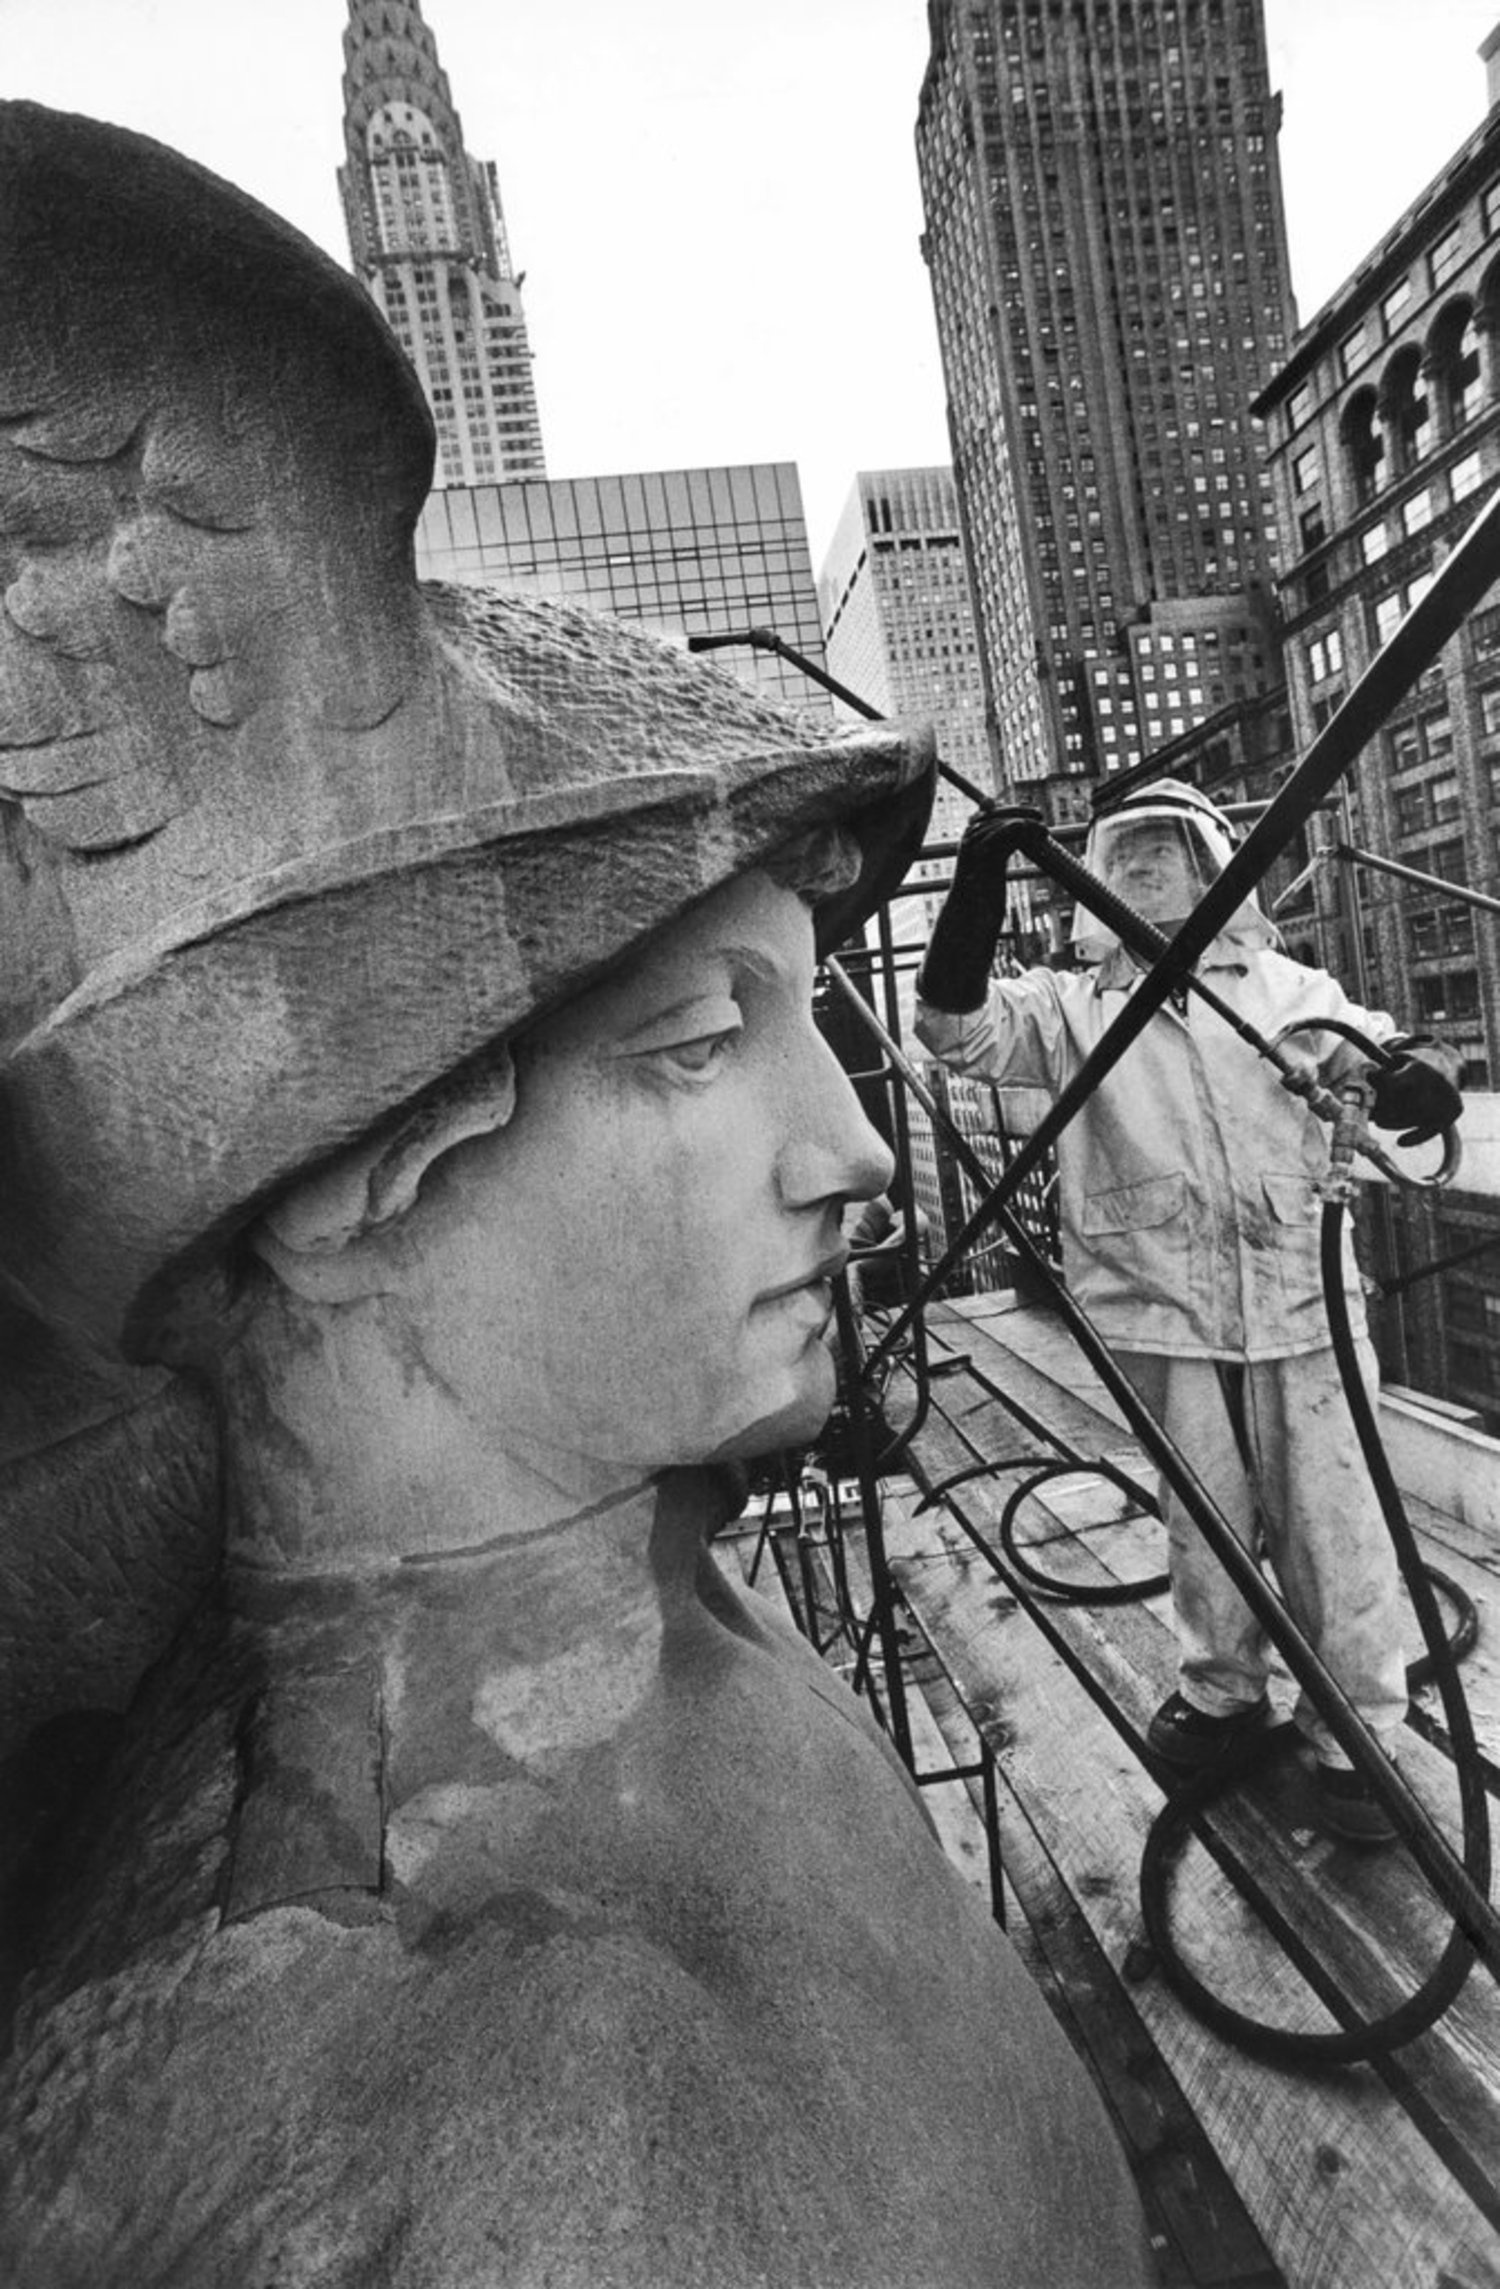 Nov. 5, 1980: A Grand Central Terminal bust receives a facelift of sorts, as workers remove dirt with sprinklers and steam.